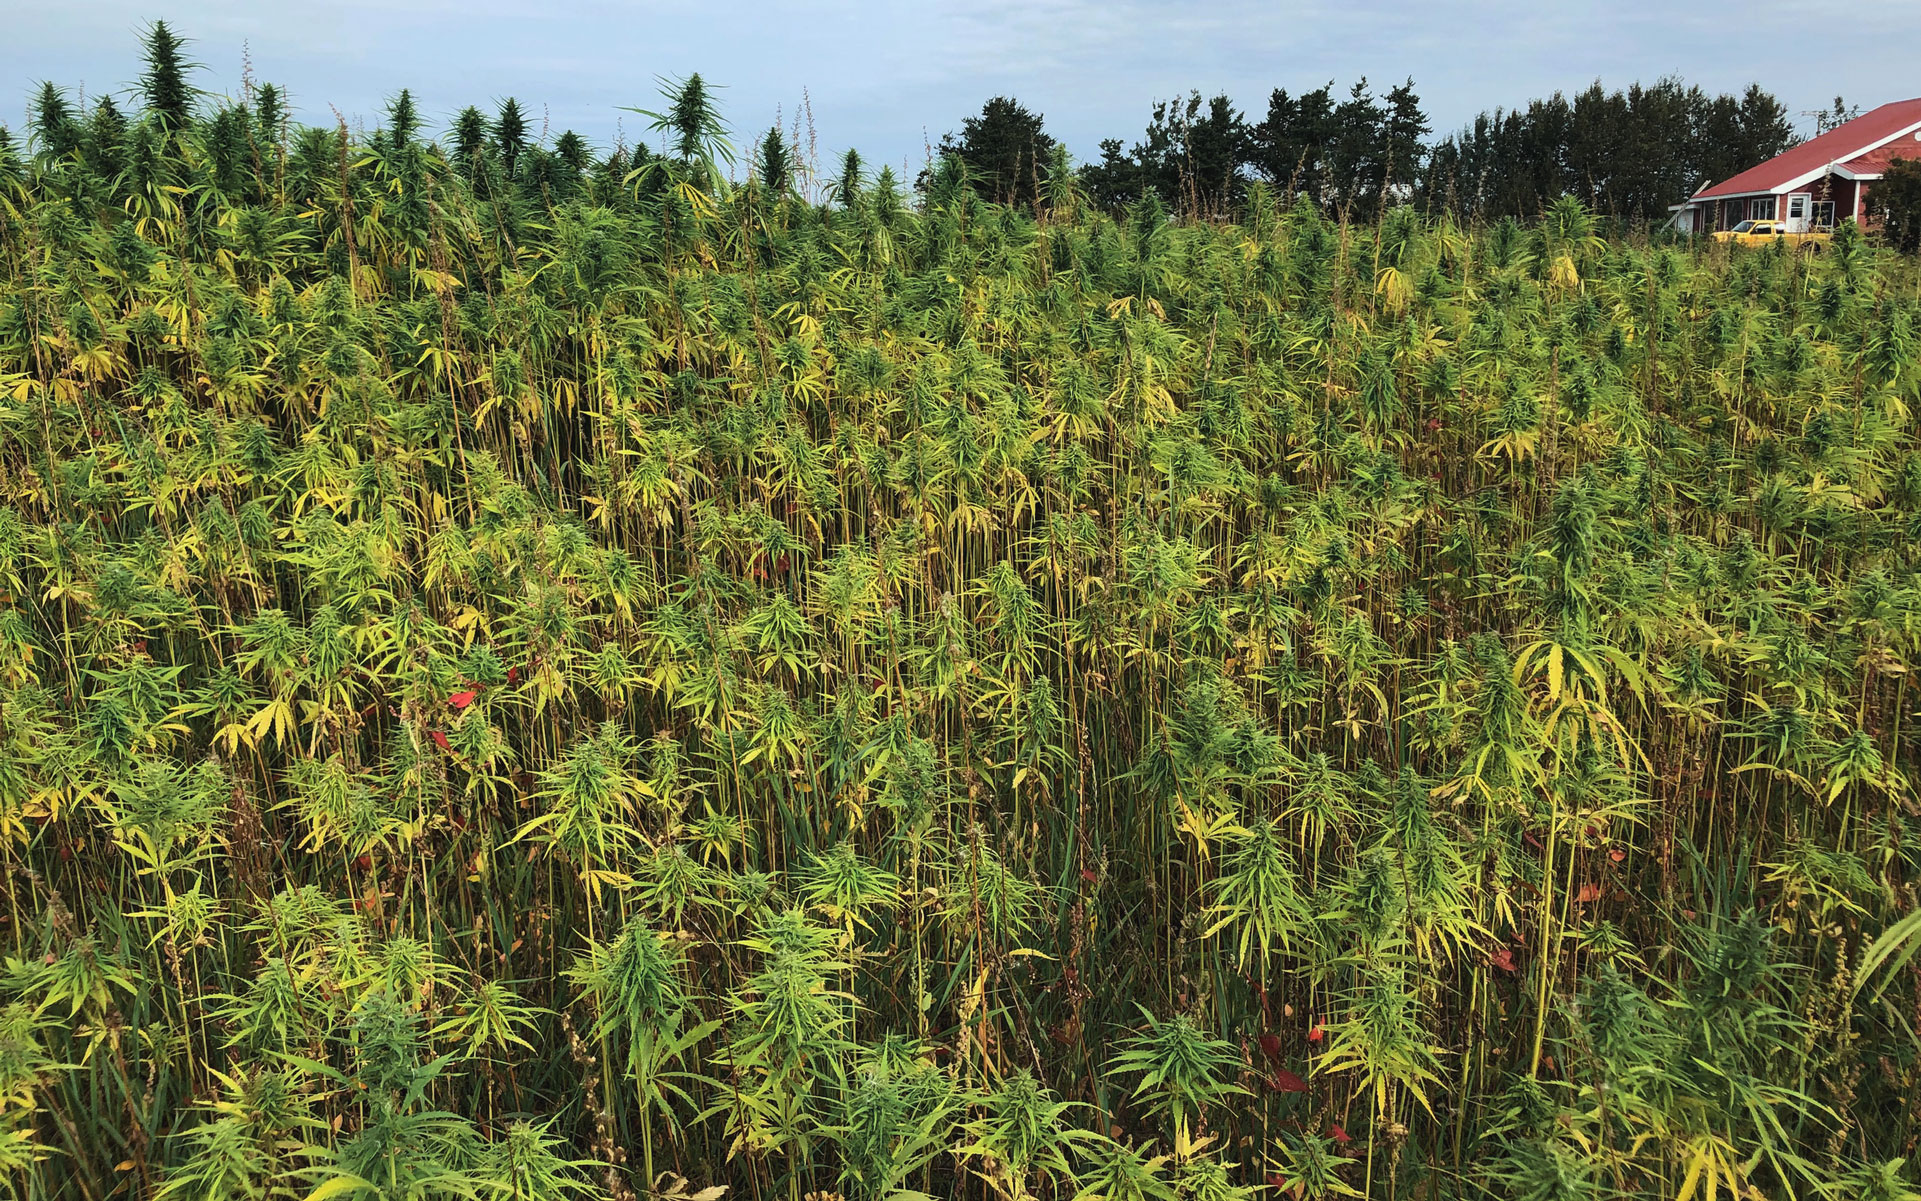 Many hemp fields grow plants rich in terpenes